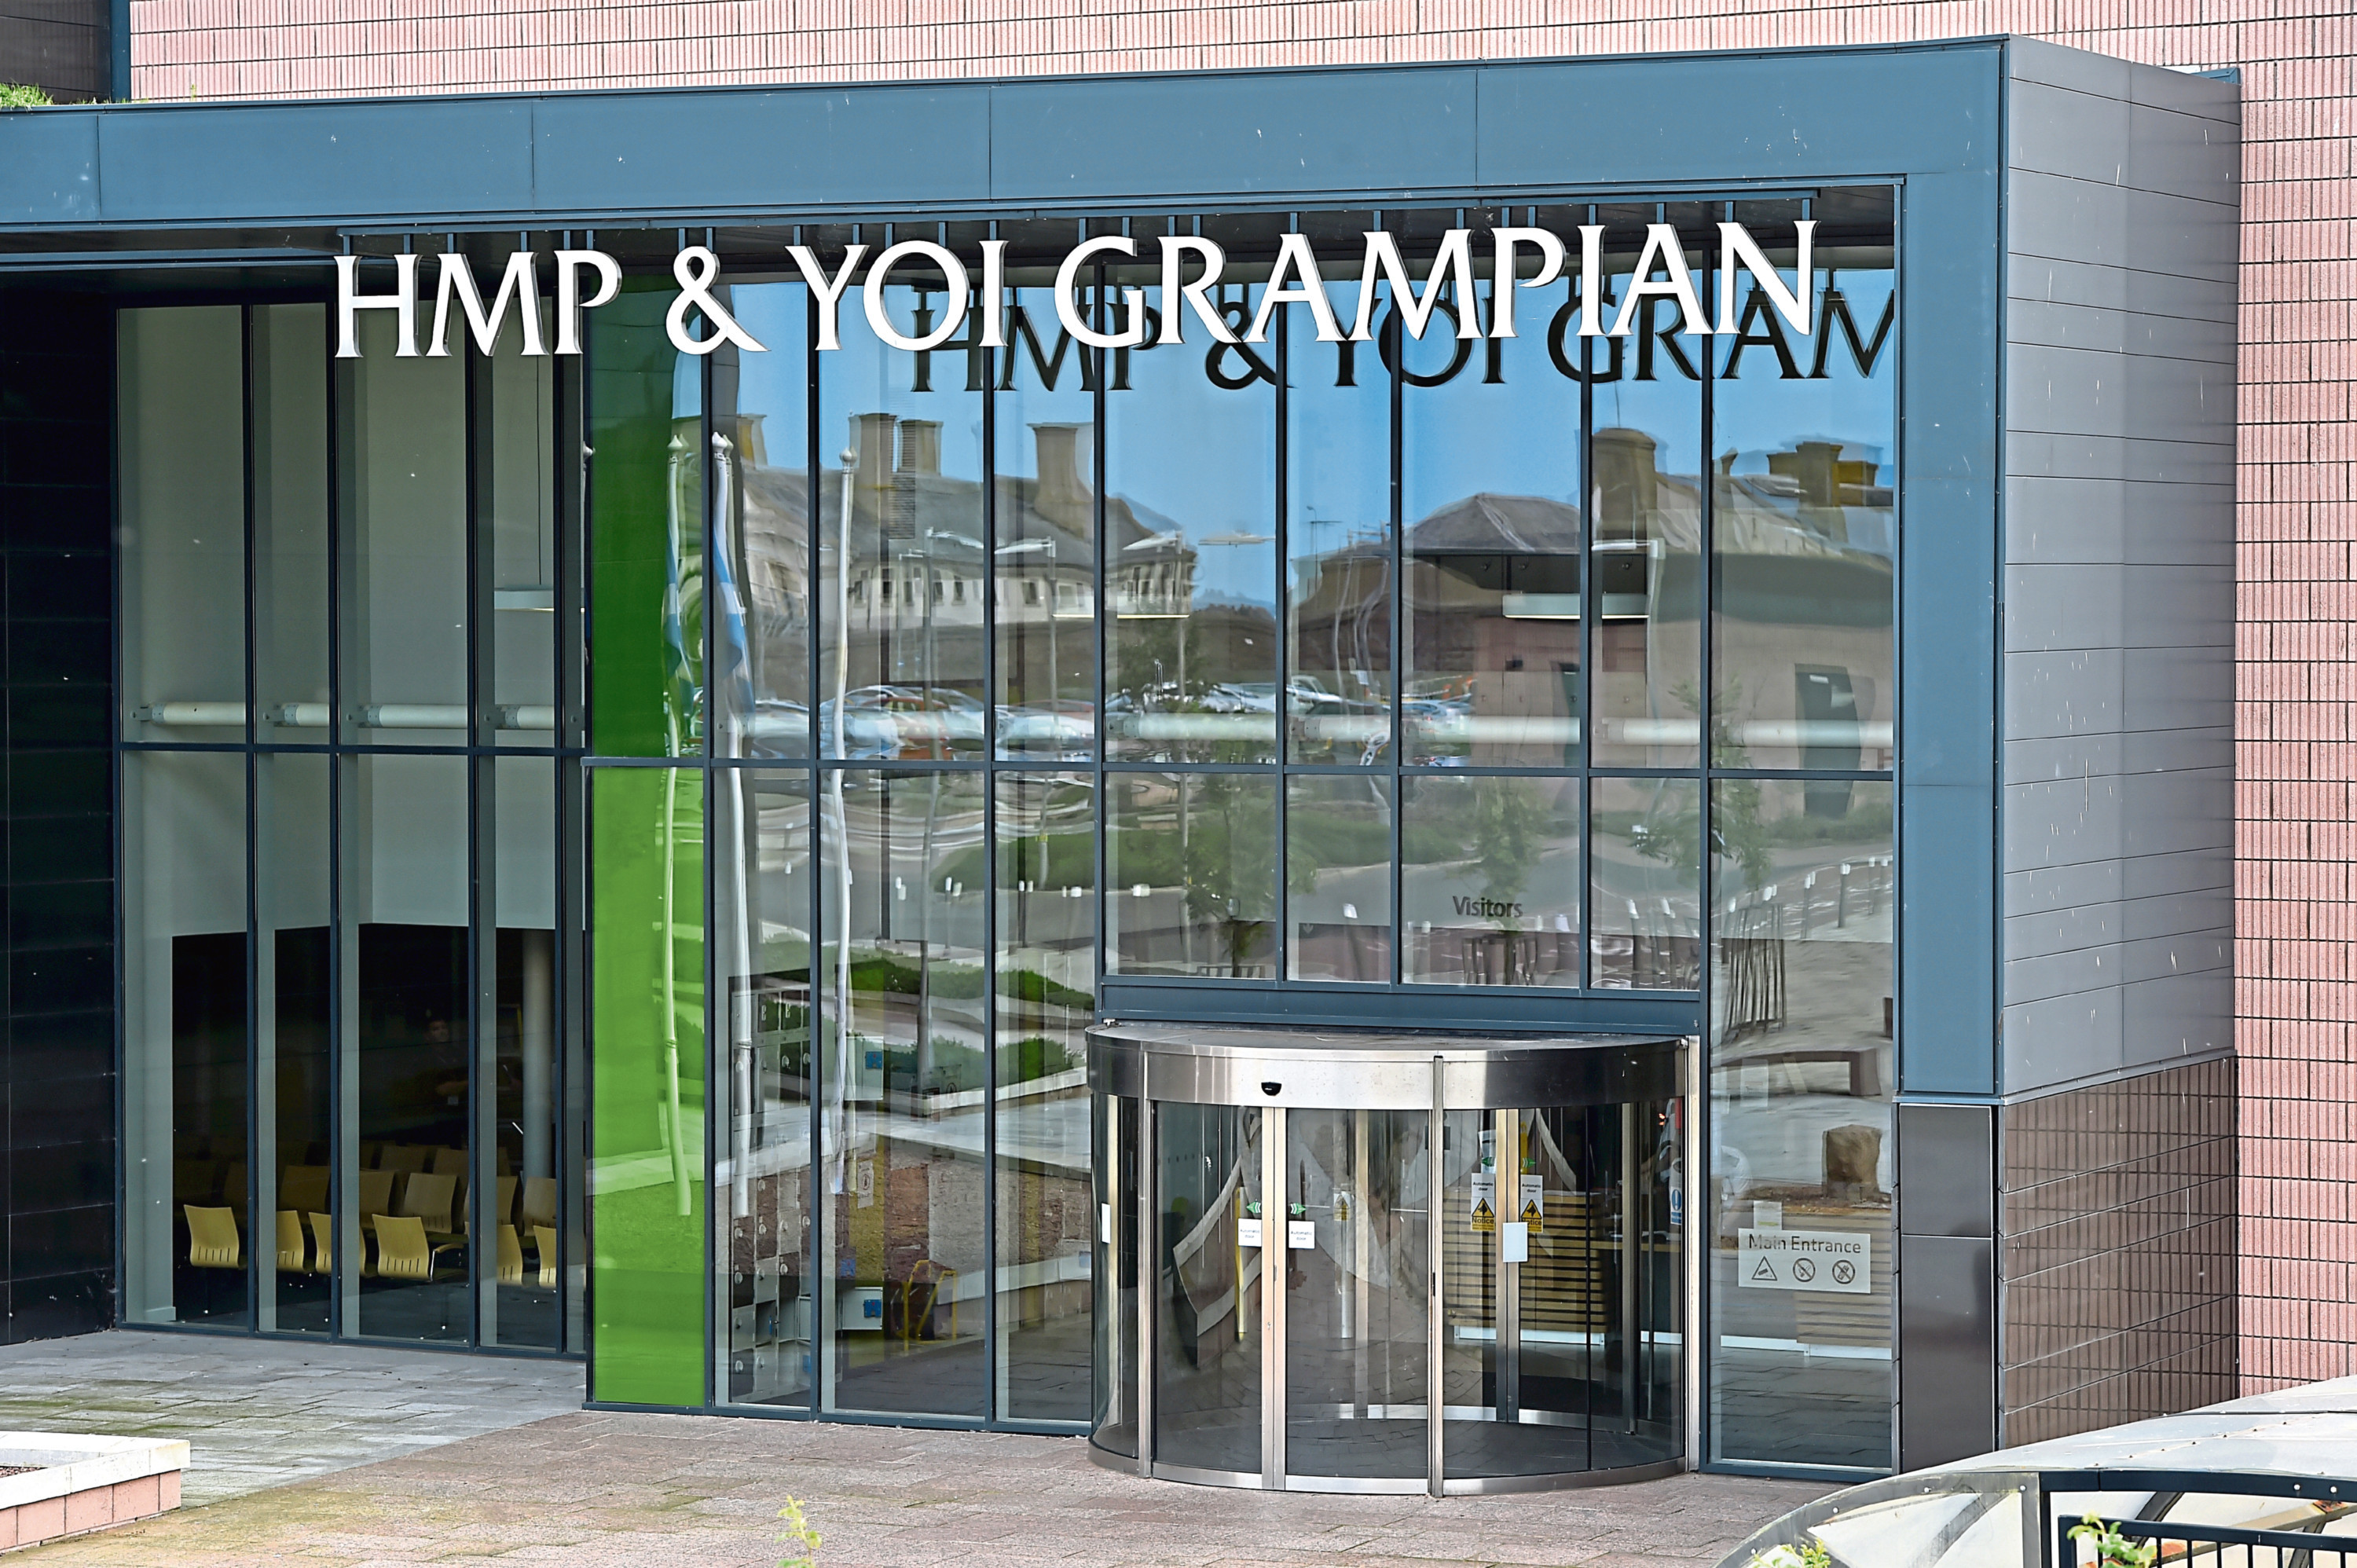 The incident is alleged to have taken place at HMP Grampian on April 19